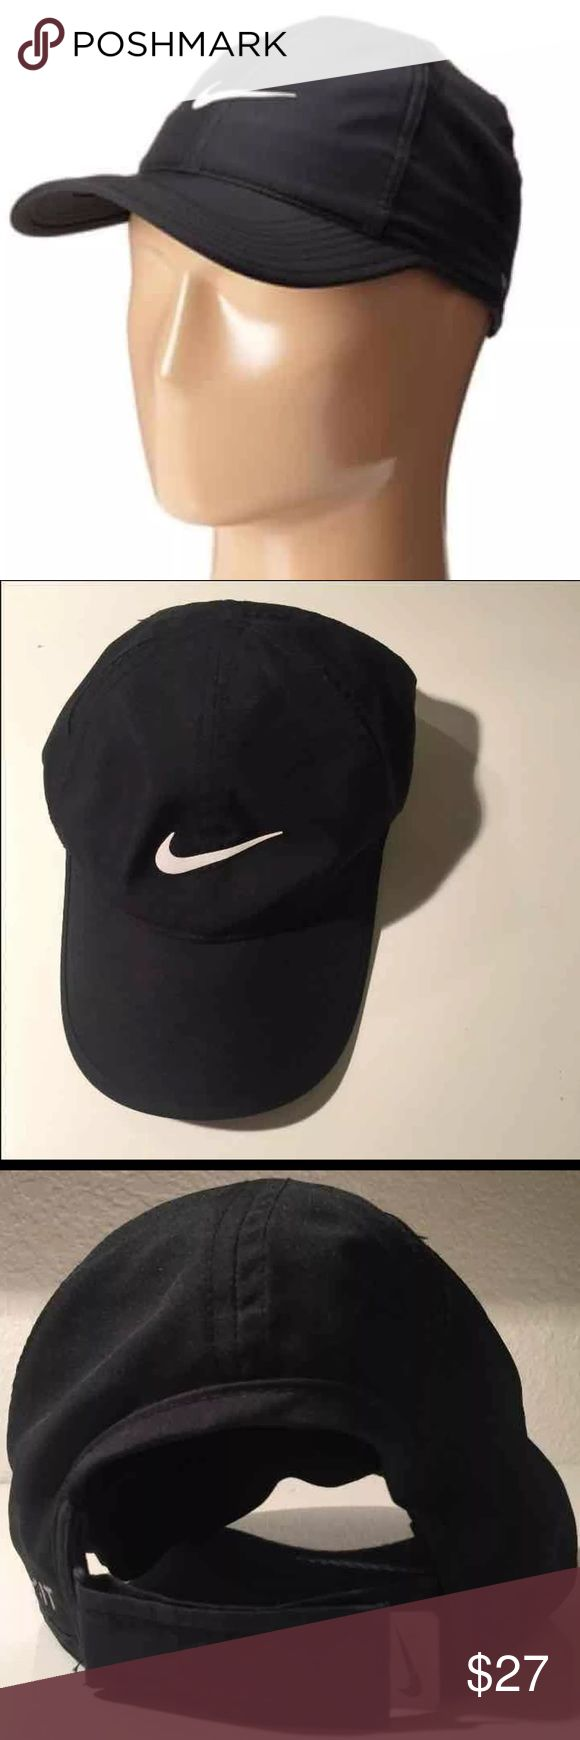 Nike Hat Nike Feather Light Dri-Fit Hat  Like new. Velcro Adjustment Strap, internal band to keep hat secure on head. Very cute and lightweight for hikes or the gym ! Re-Posh: bought from another posher and didn't care for how the hat looks on me so I'm listing it. No flaws or defects. Nike Accessories Hats